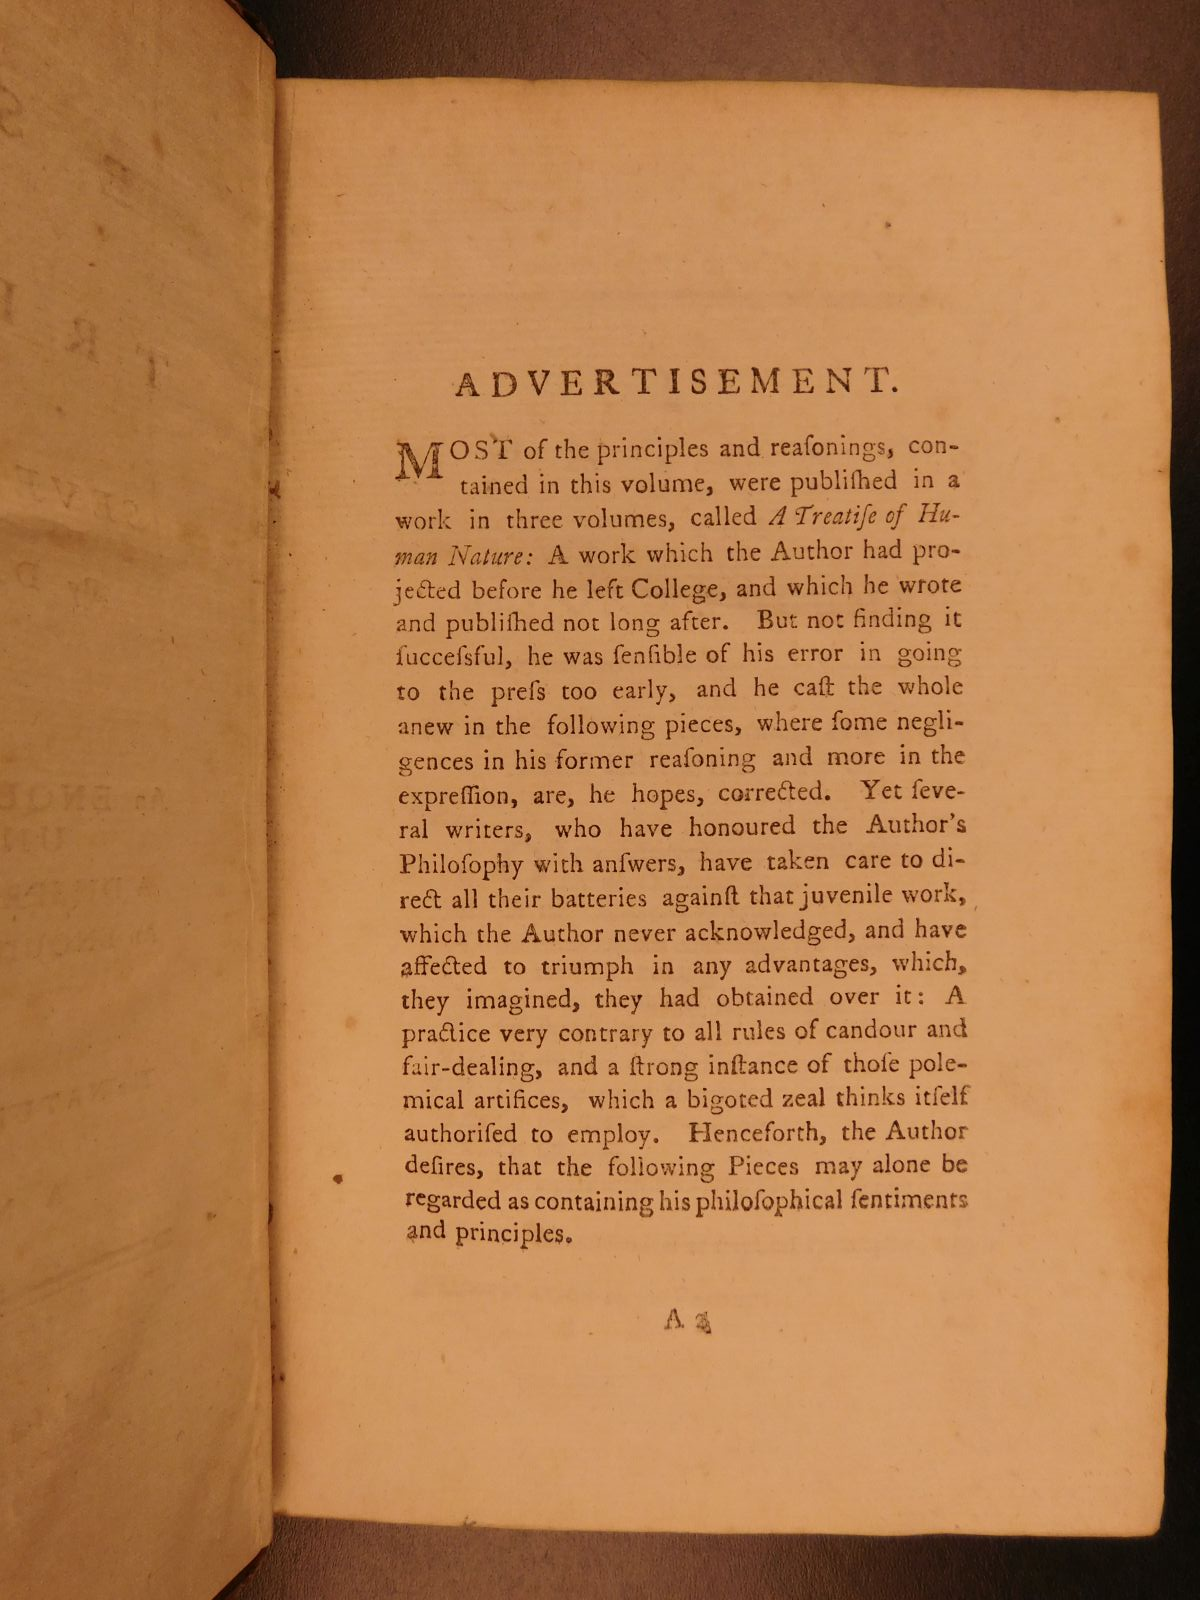 schilb antiquarian   david hume essays of scottish philosophy english enlightenment  politics v